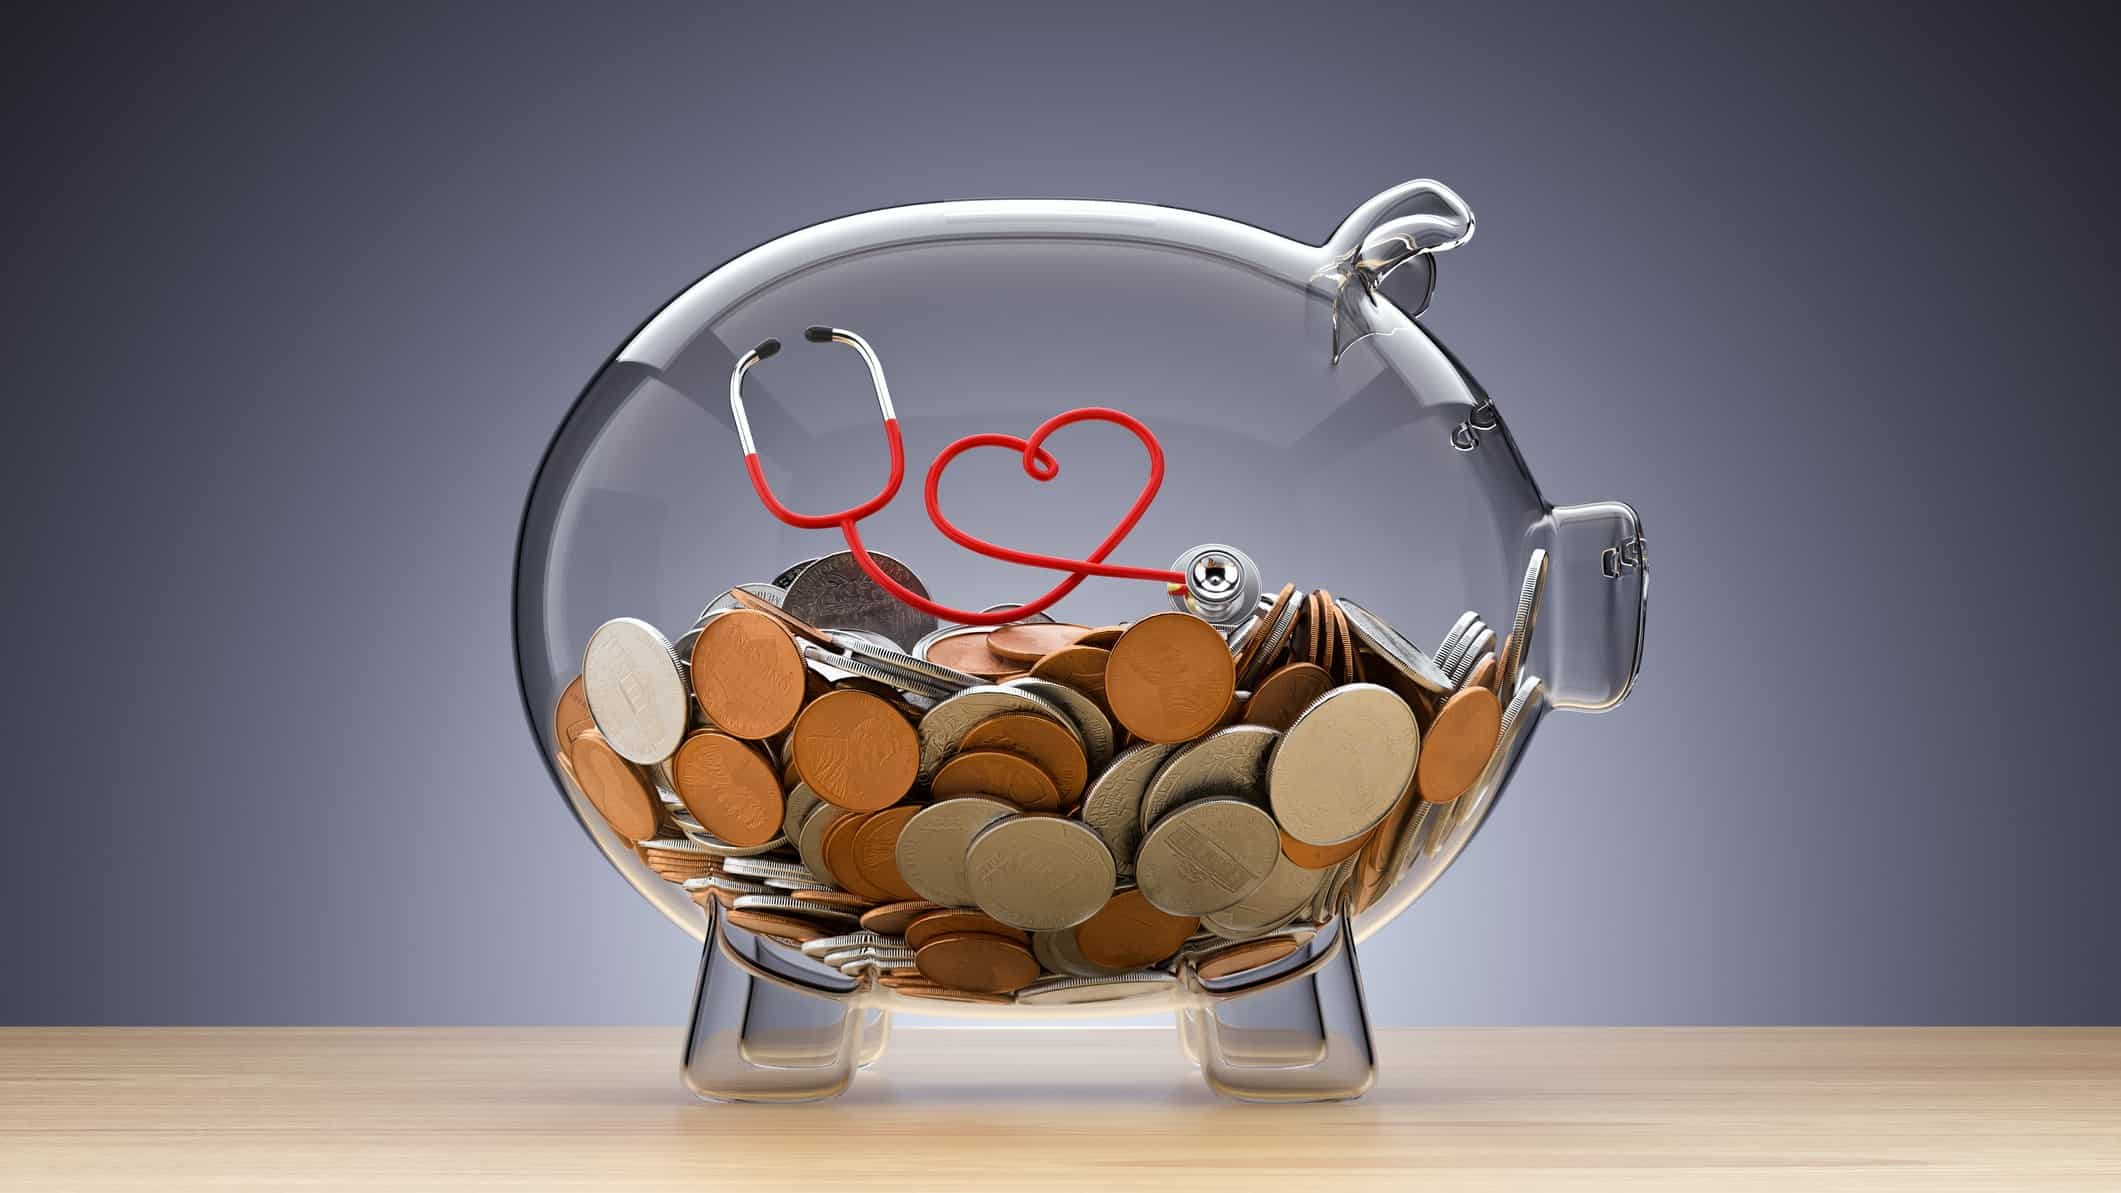 Glass piggy bank with coins and stethoscope in shape of a heart inside